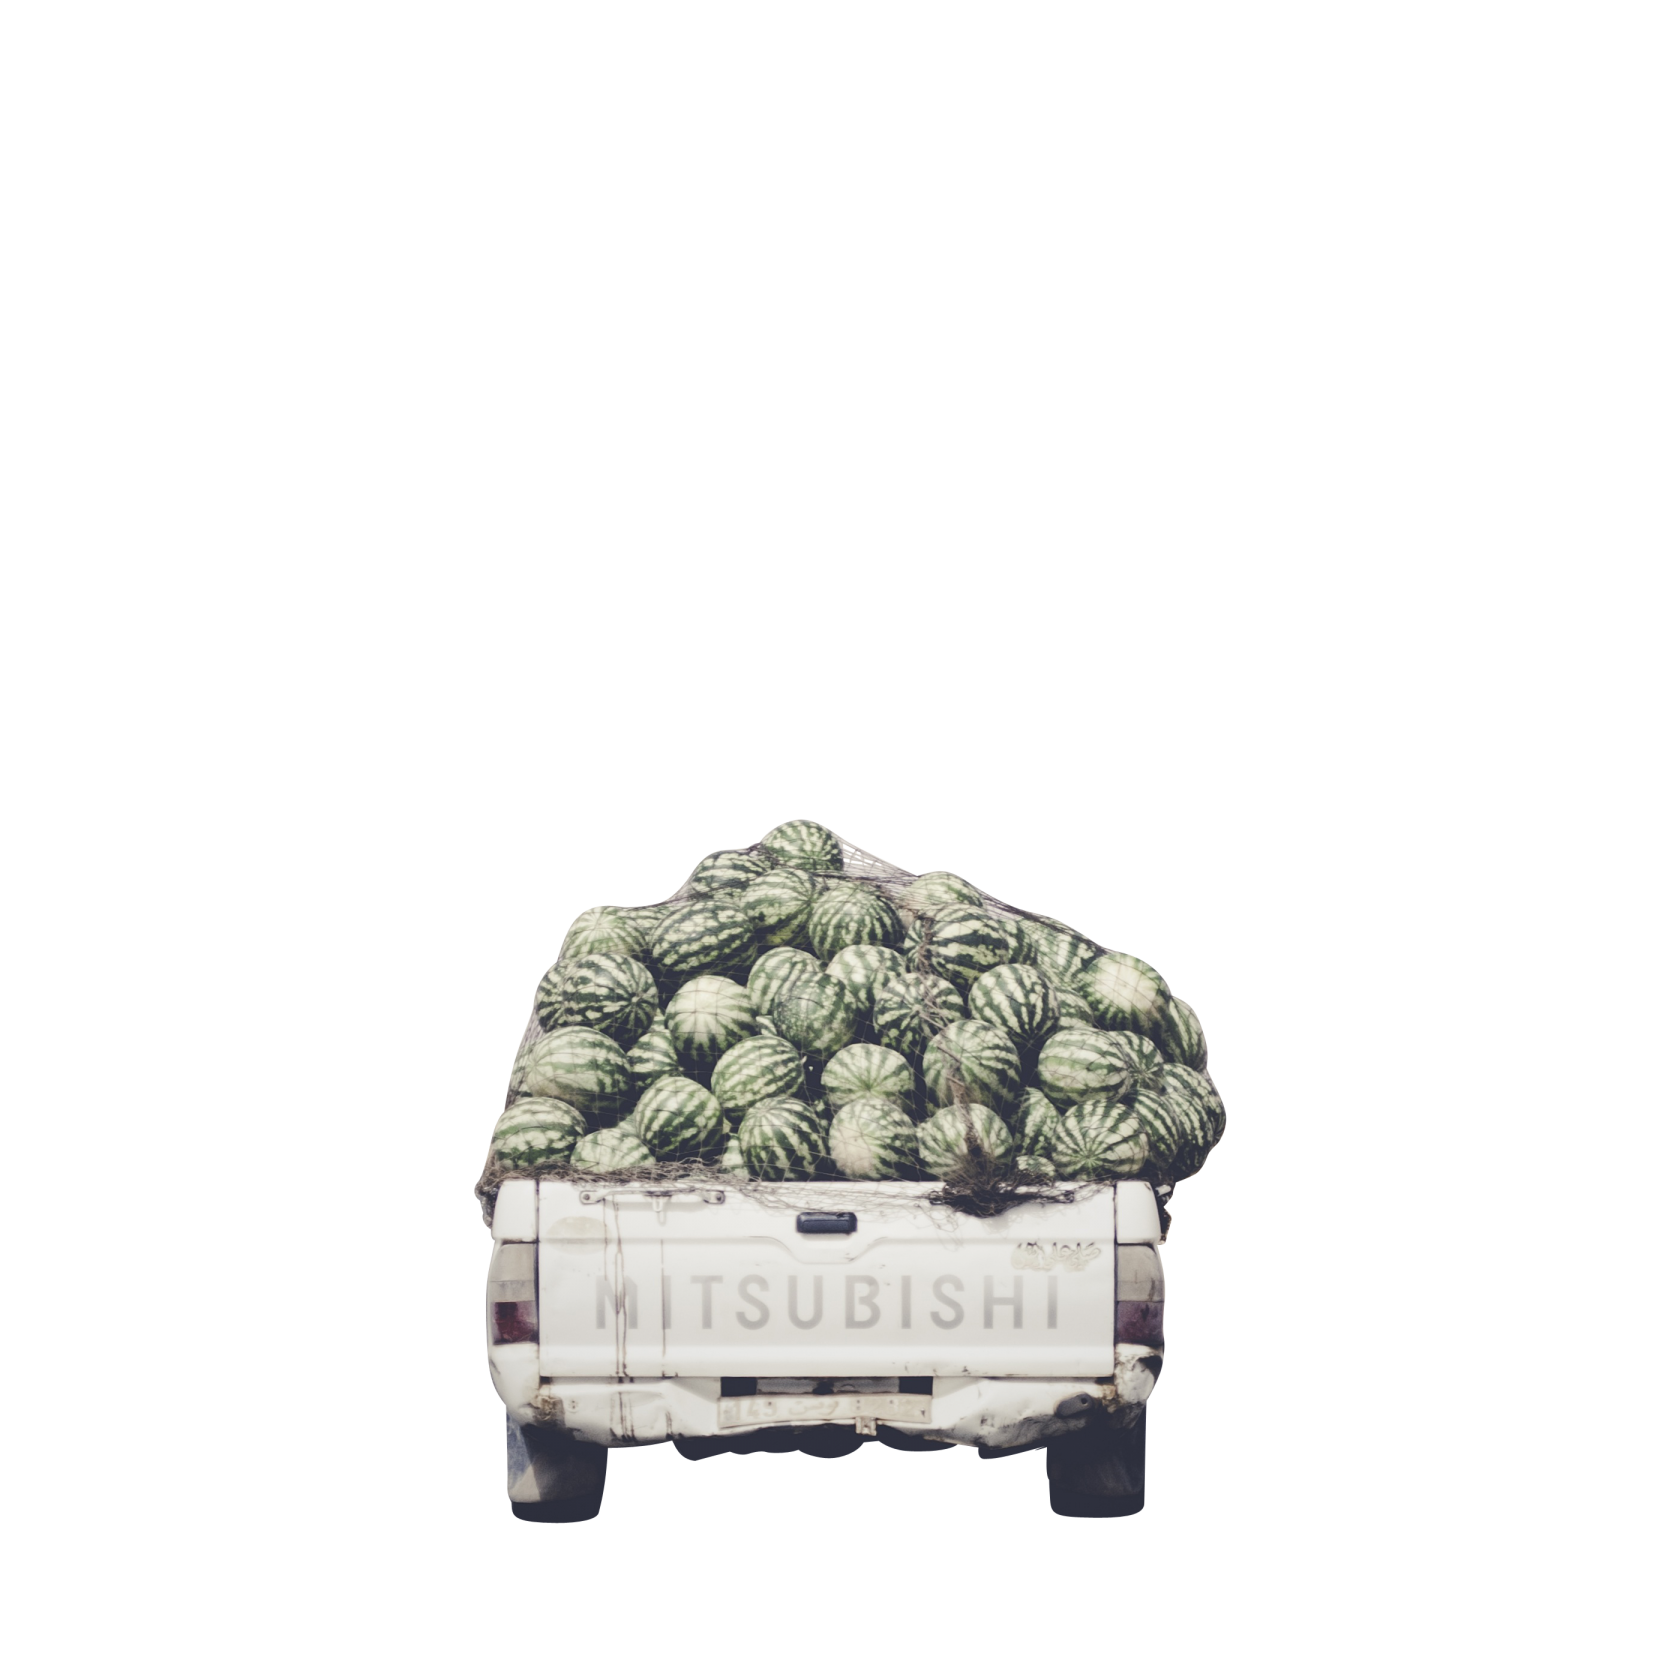 Load of Watermelons in Mistubishi Pick-up